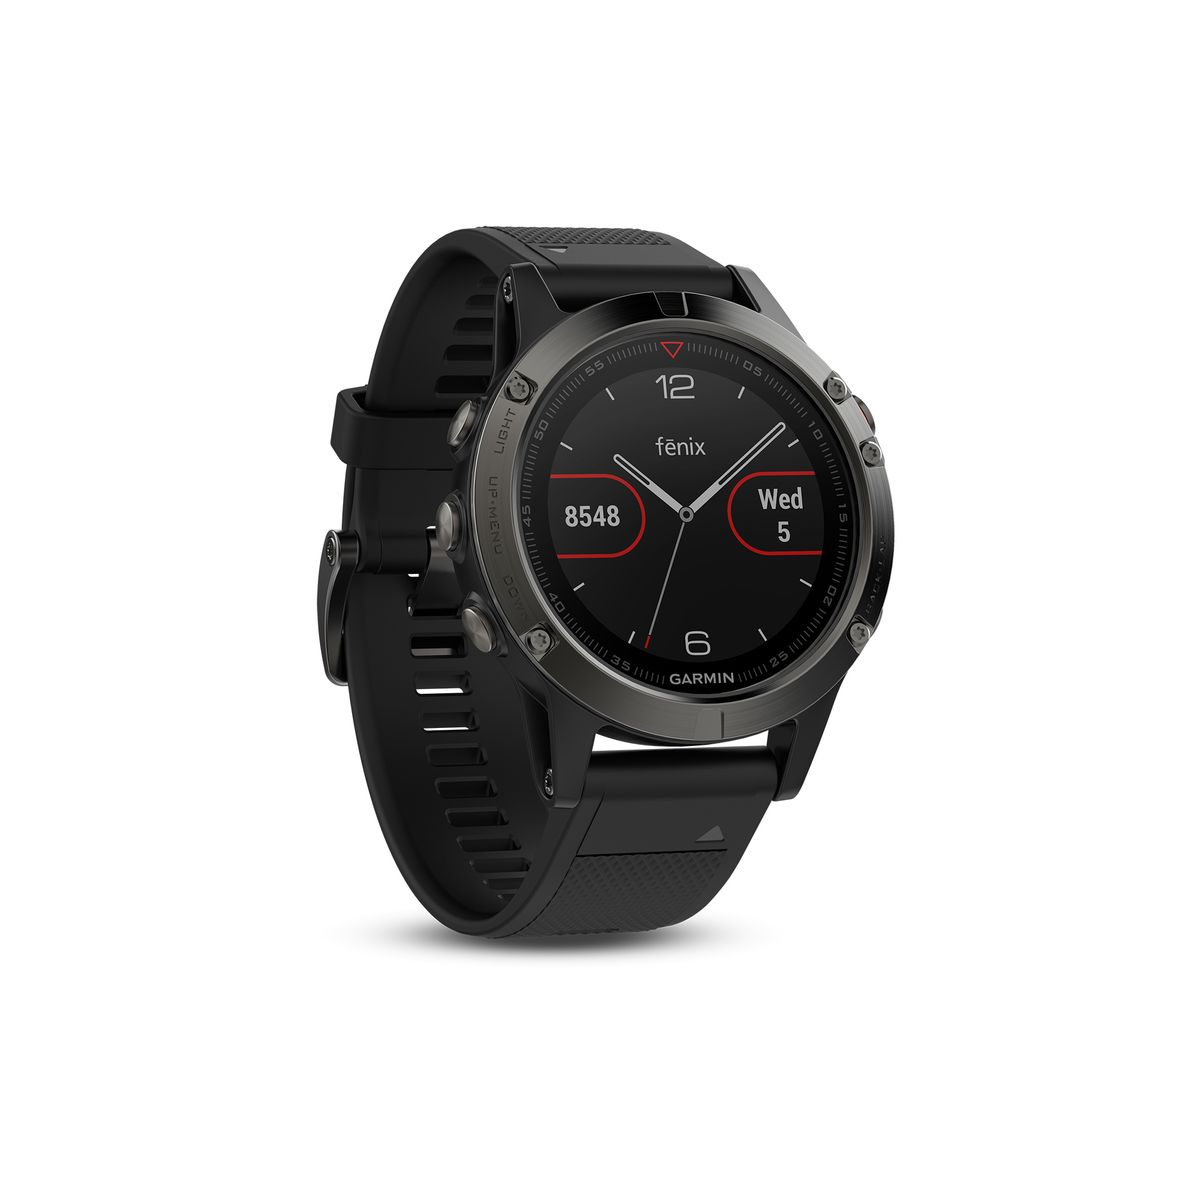 fenix® 5 GPS multisport watch